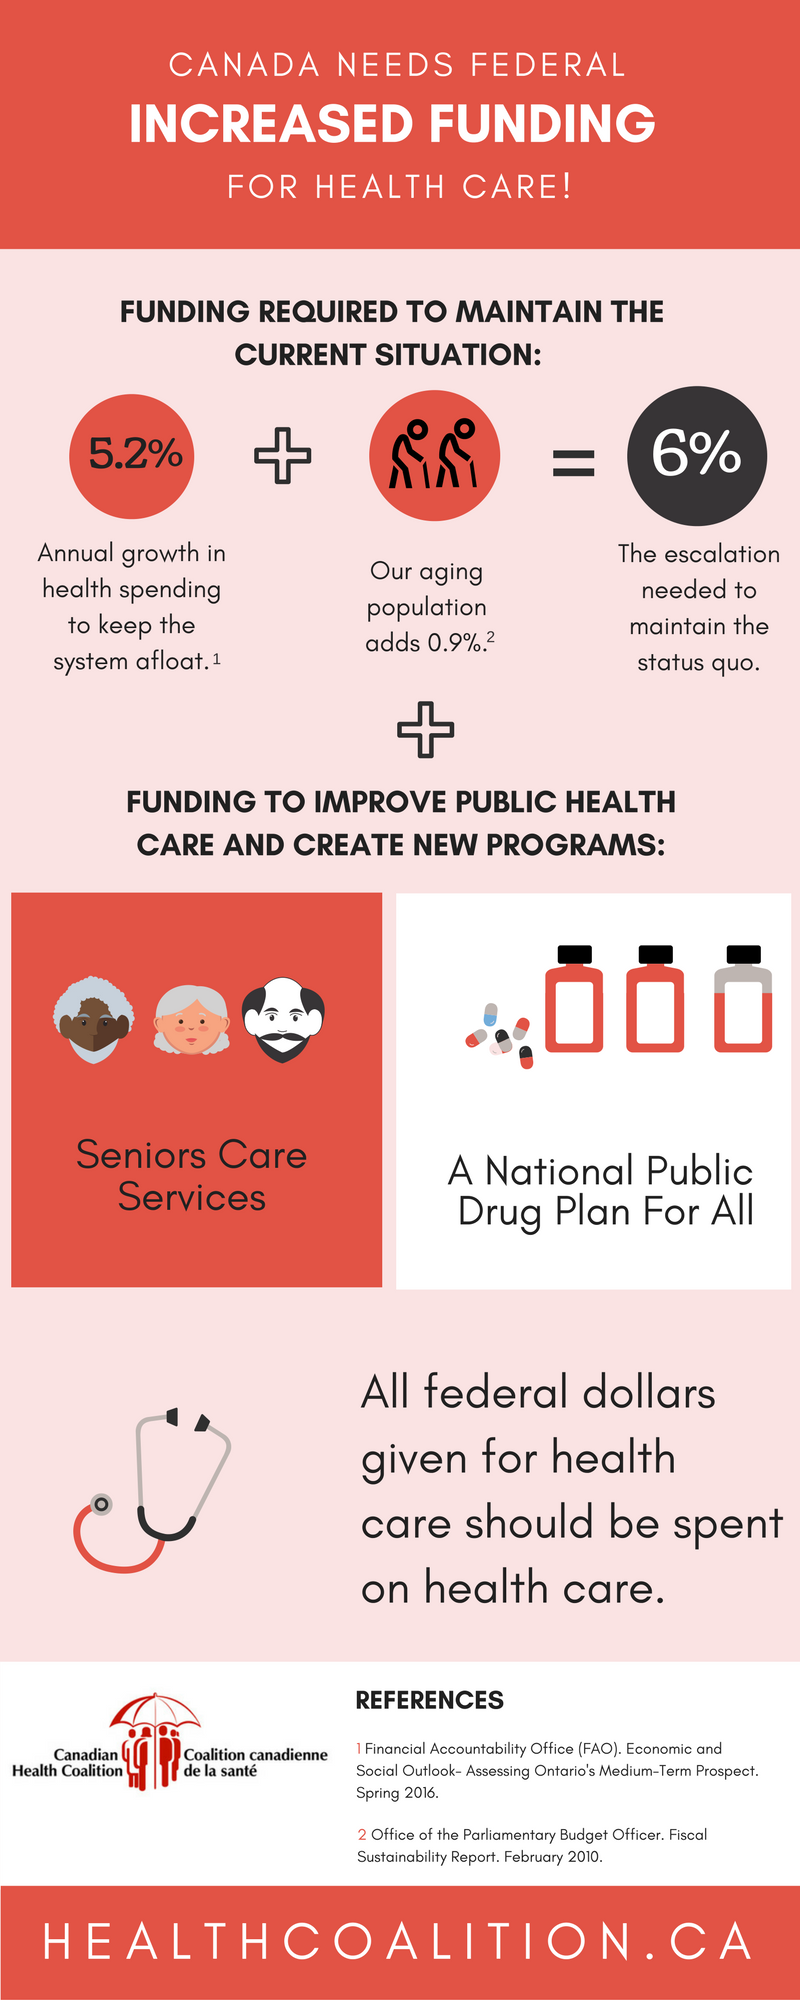 final-all-health-care-dollars-should-be-spent-on-health-care-1